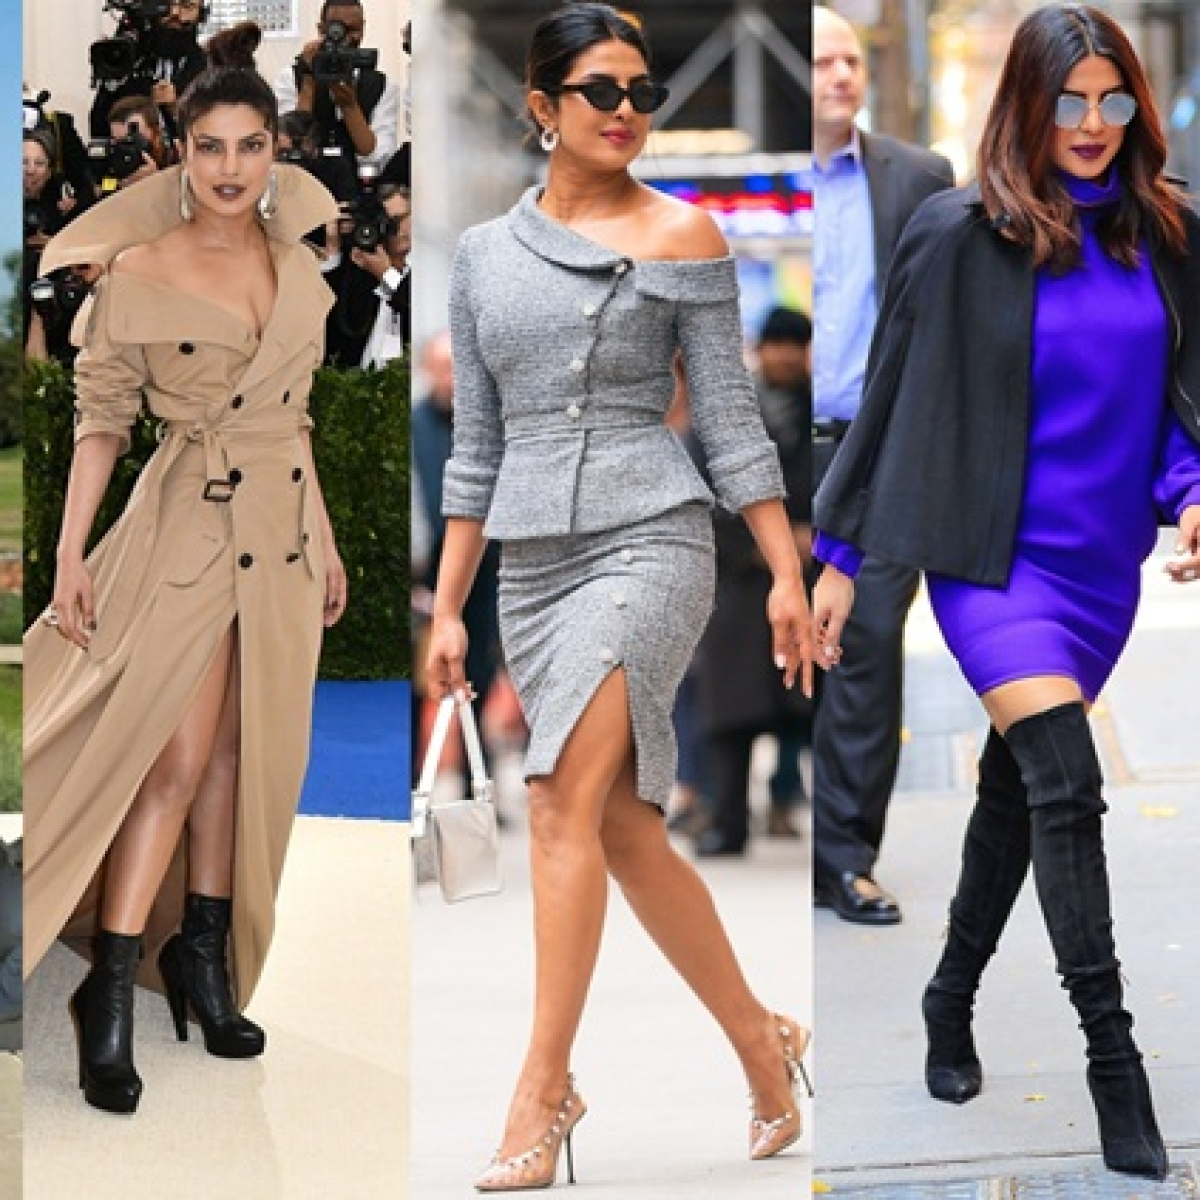 Priyanka Chopra owns 80 pairs of heels that can bring the world to a standstill